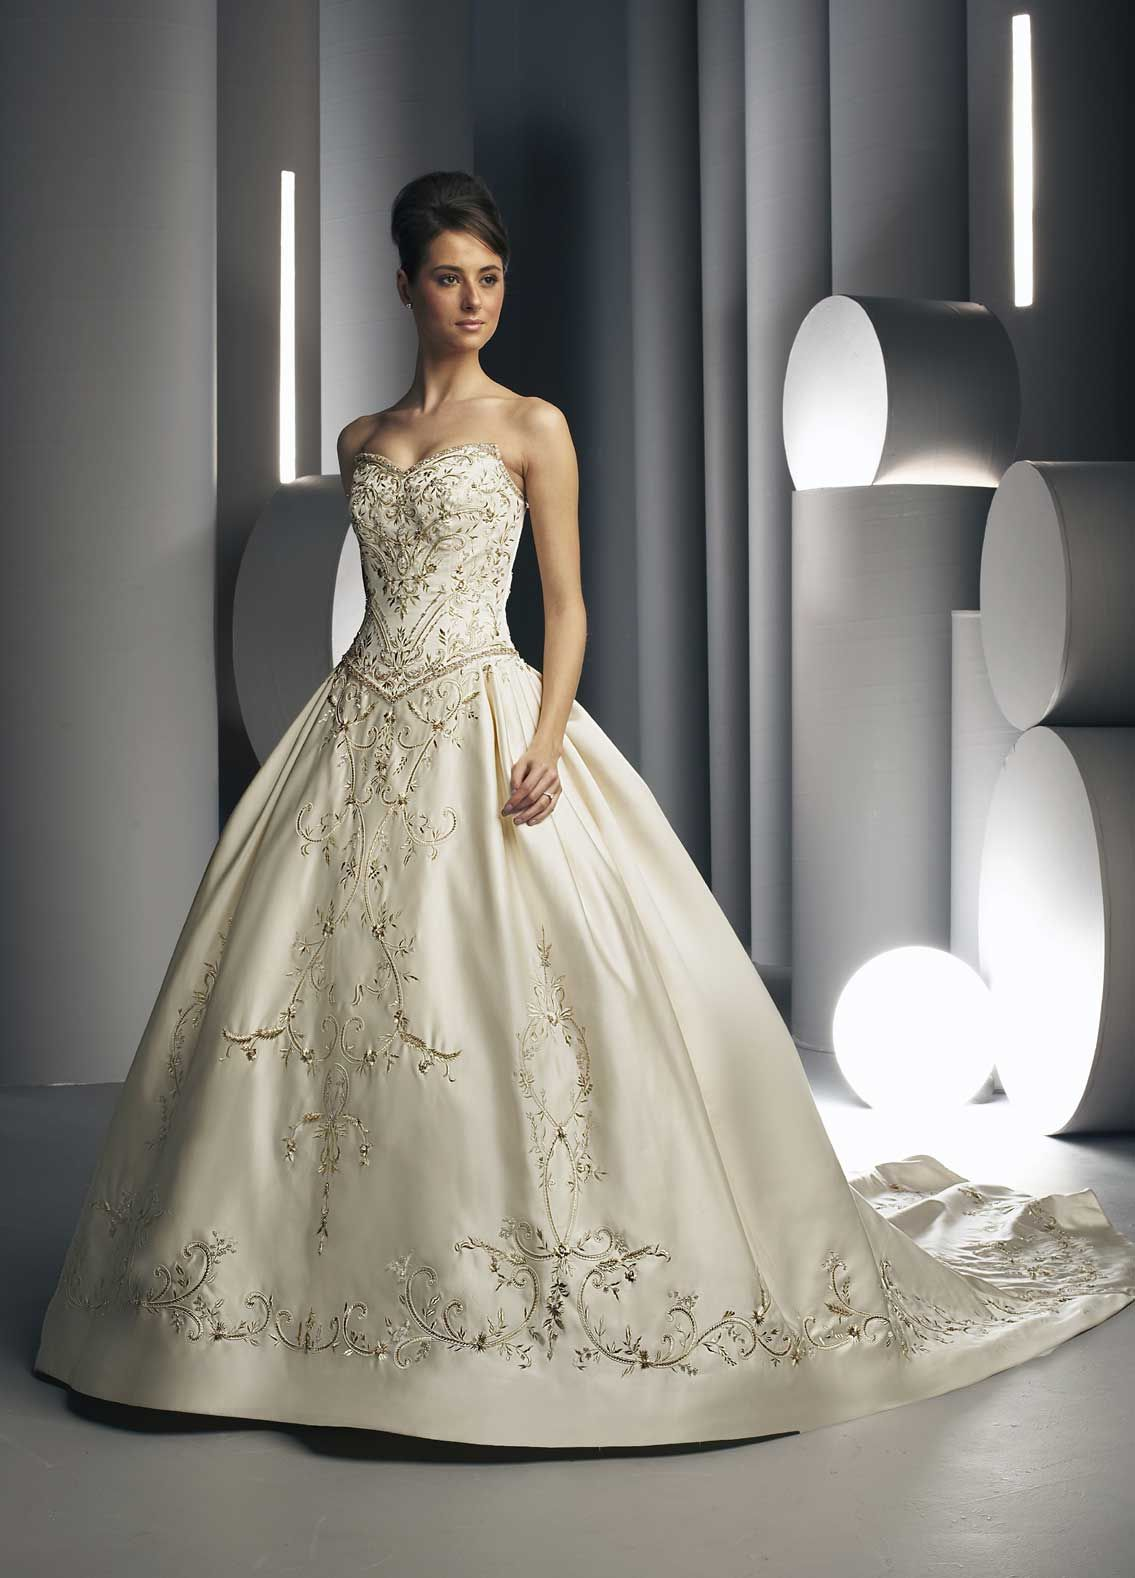 wedding dresses | wedding dresses off white wedding dresses ...